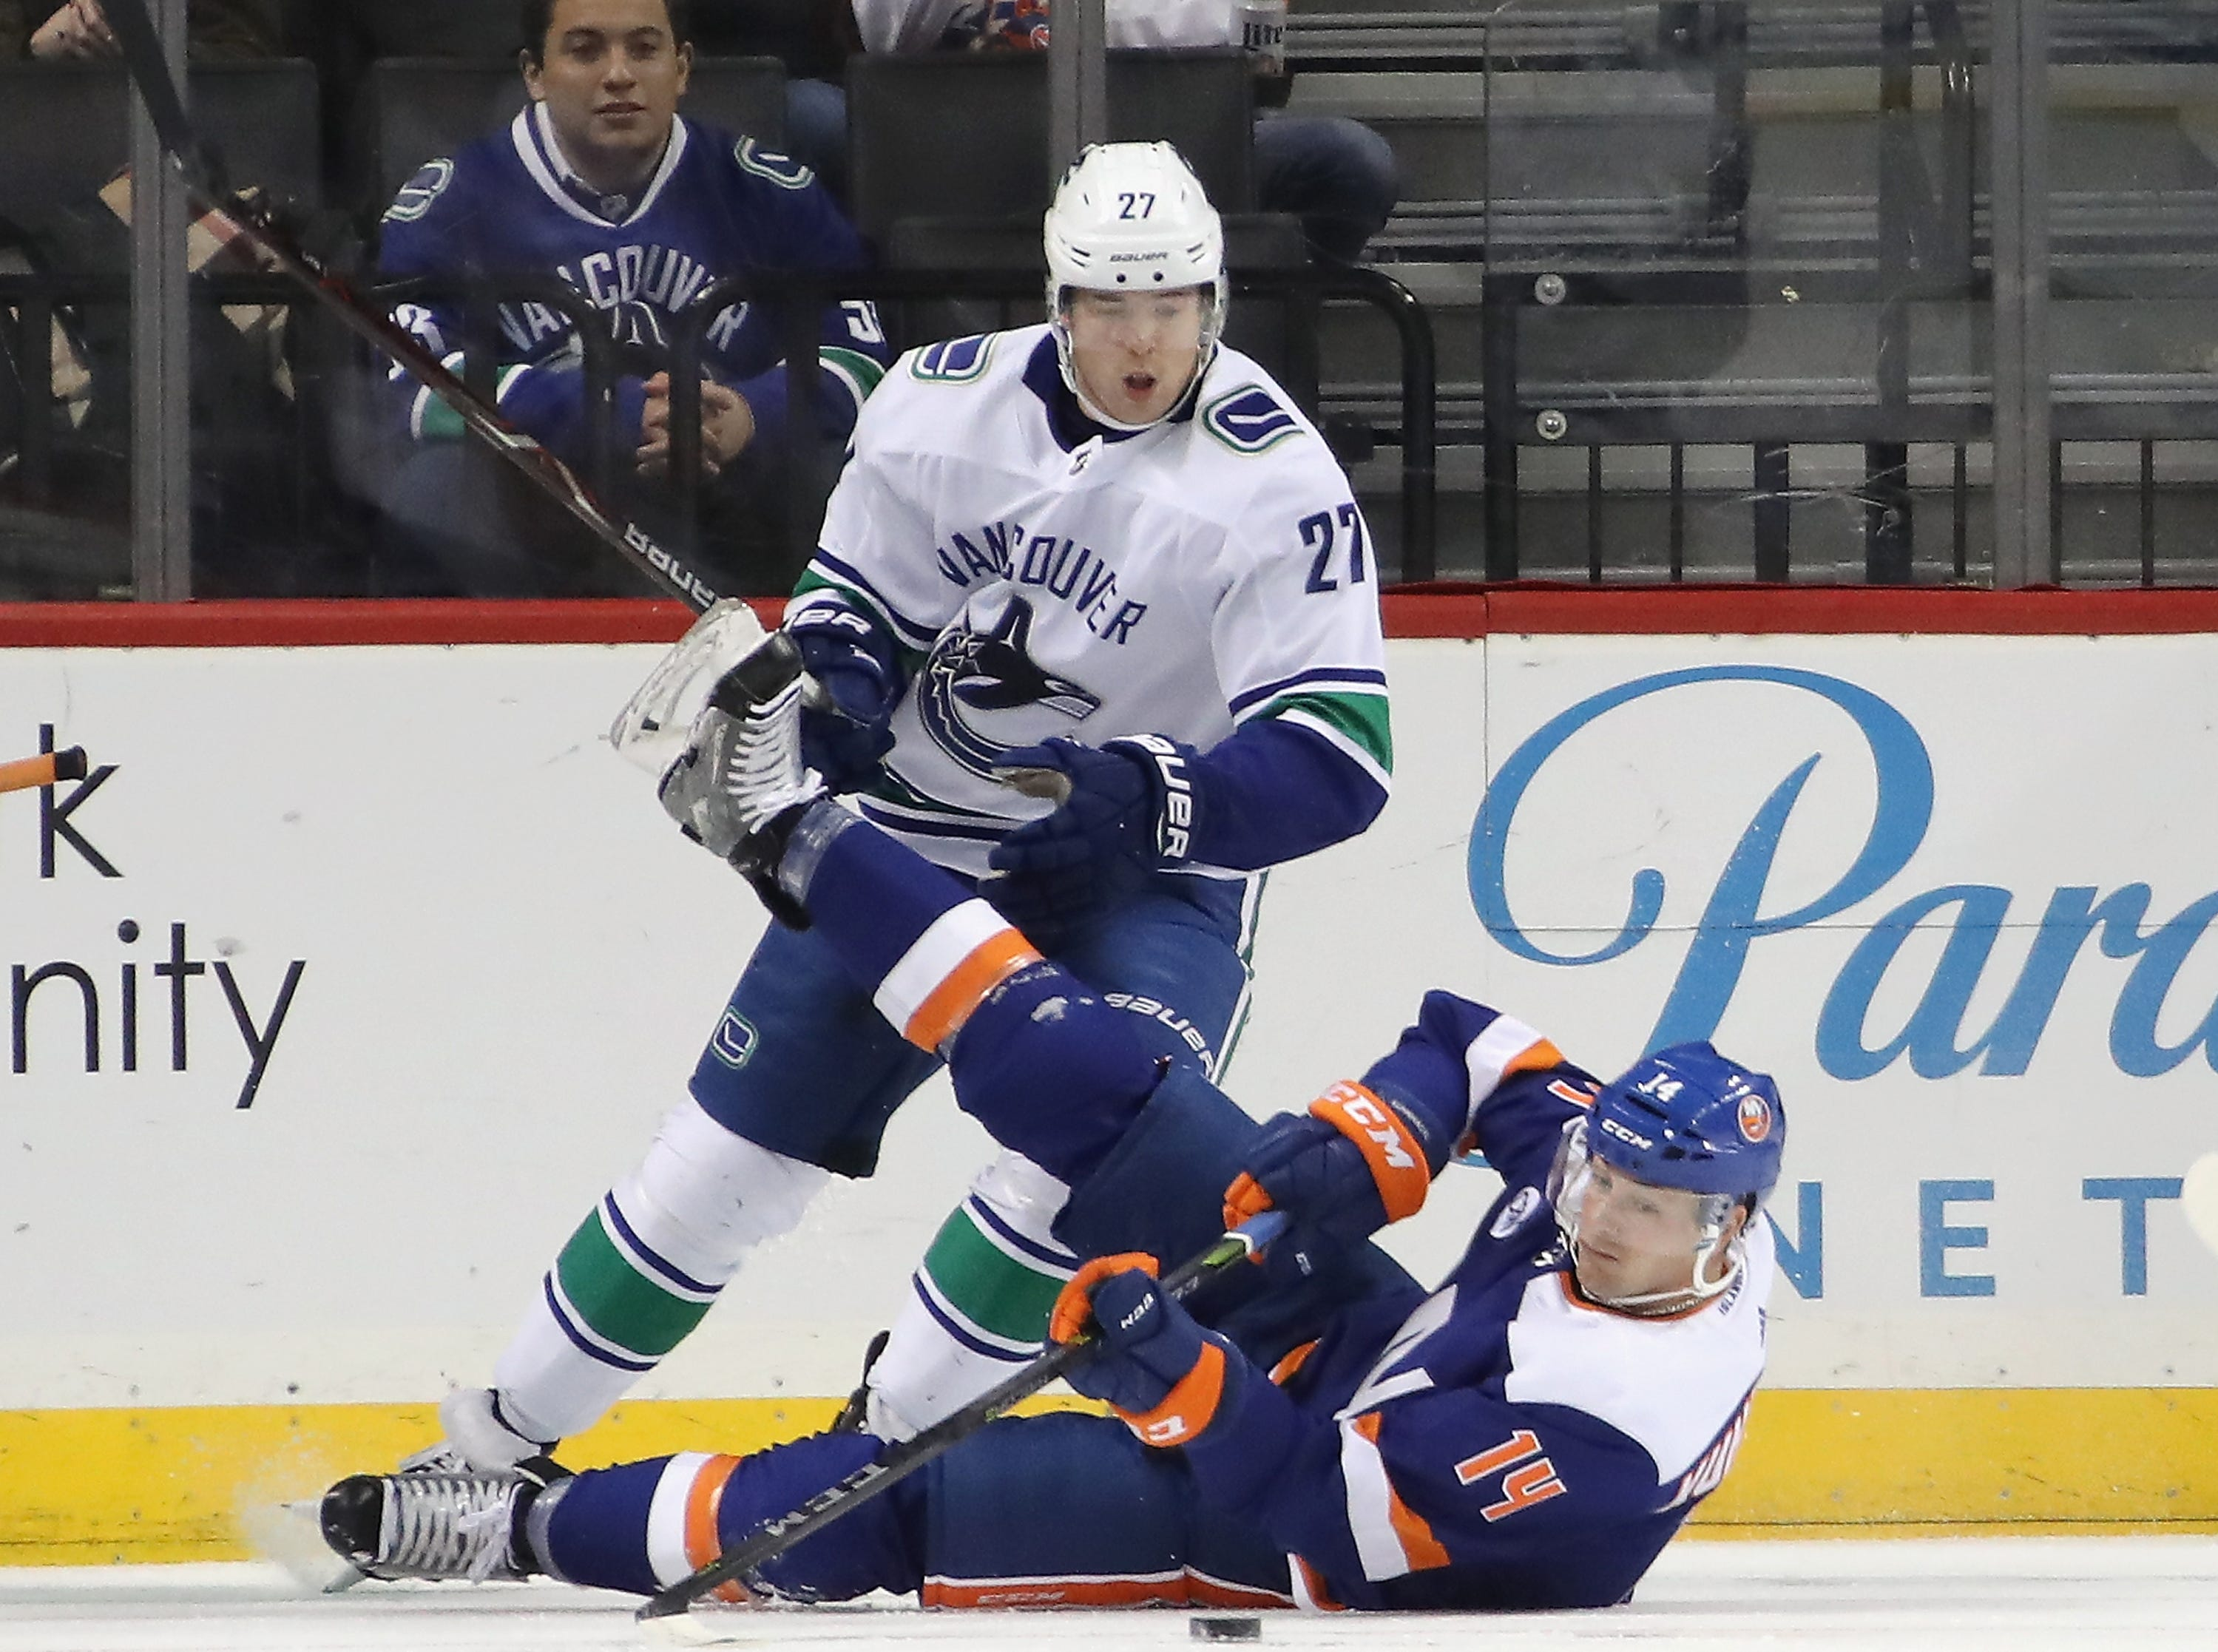 Nov. 13: Islanders forward Tom Kuhnhackl scores a no-look goal after he is being tripped by Canucks defenseman Ben Hutton,